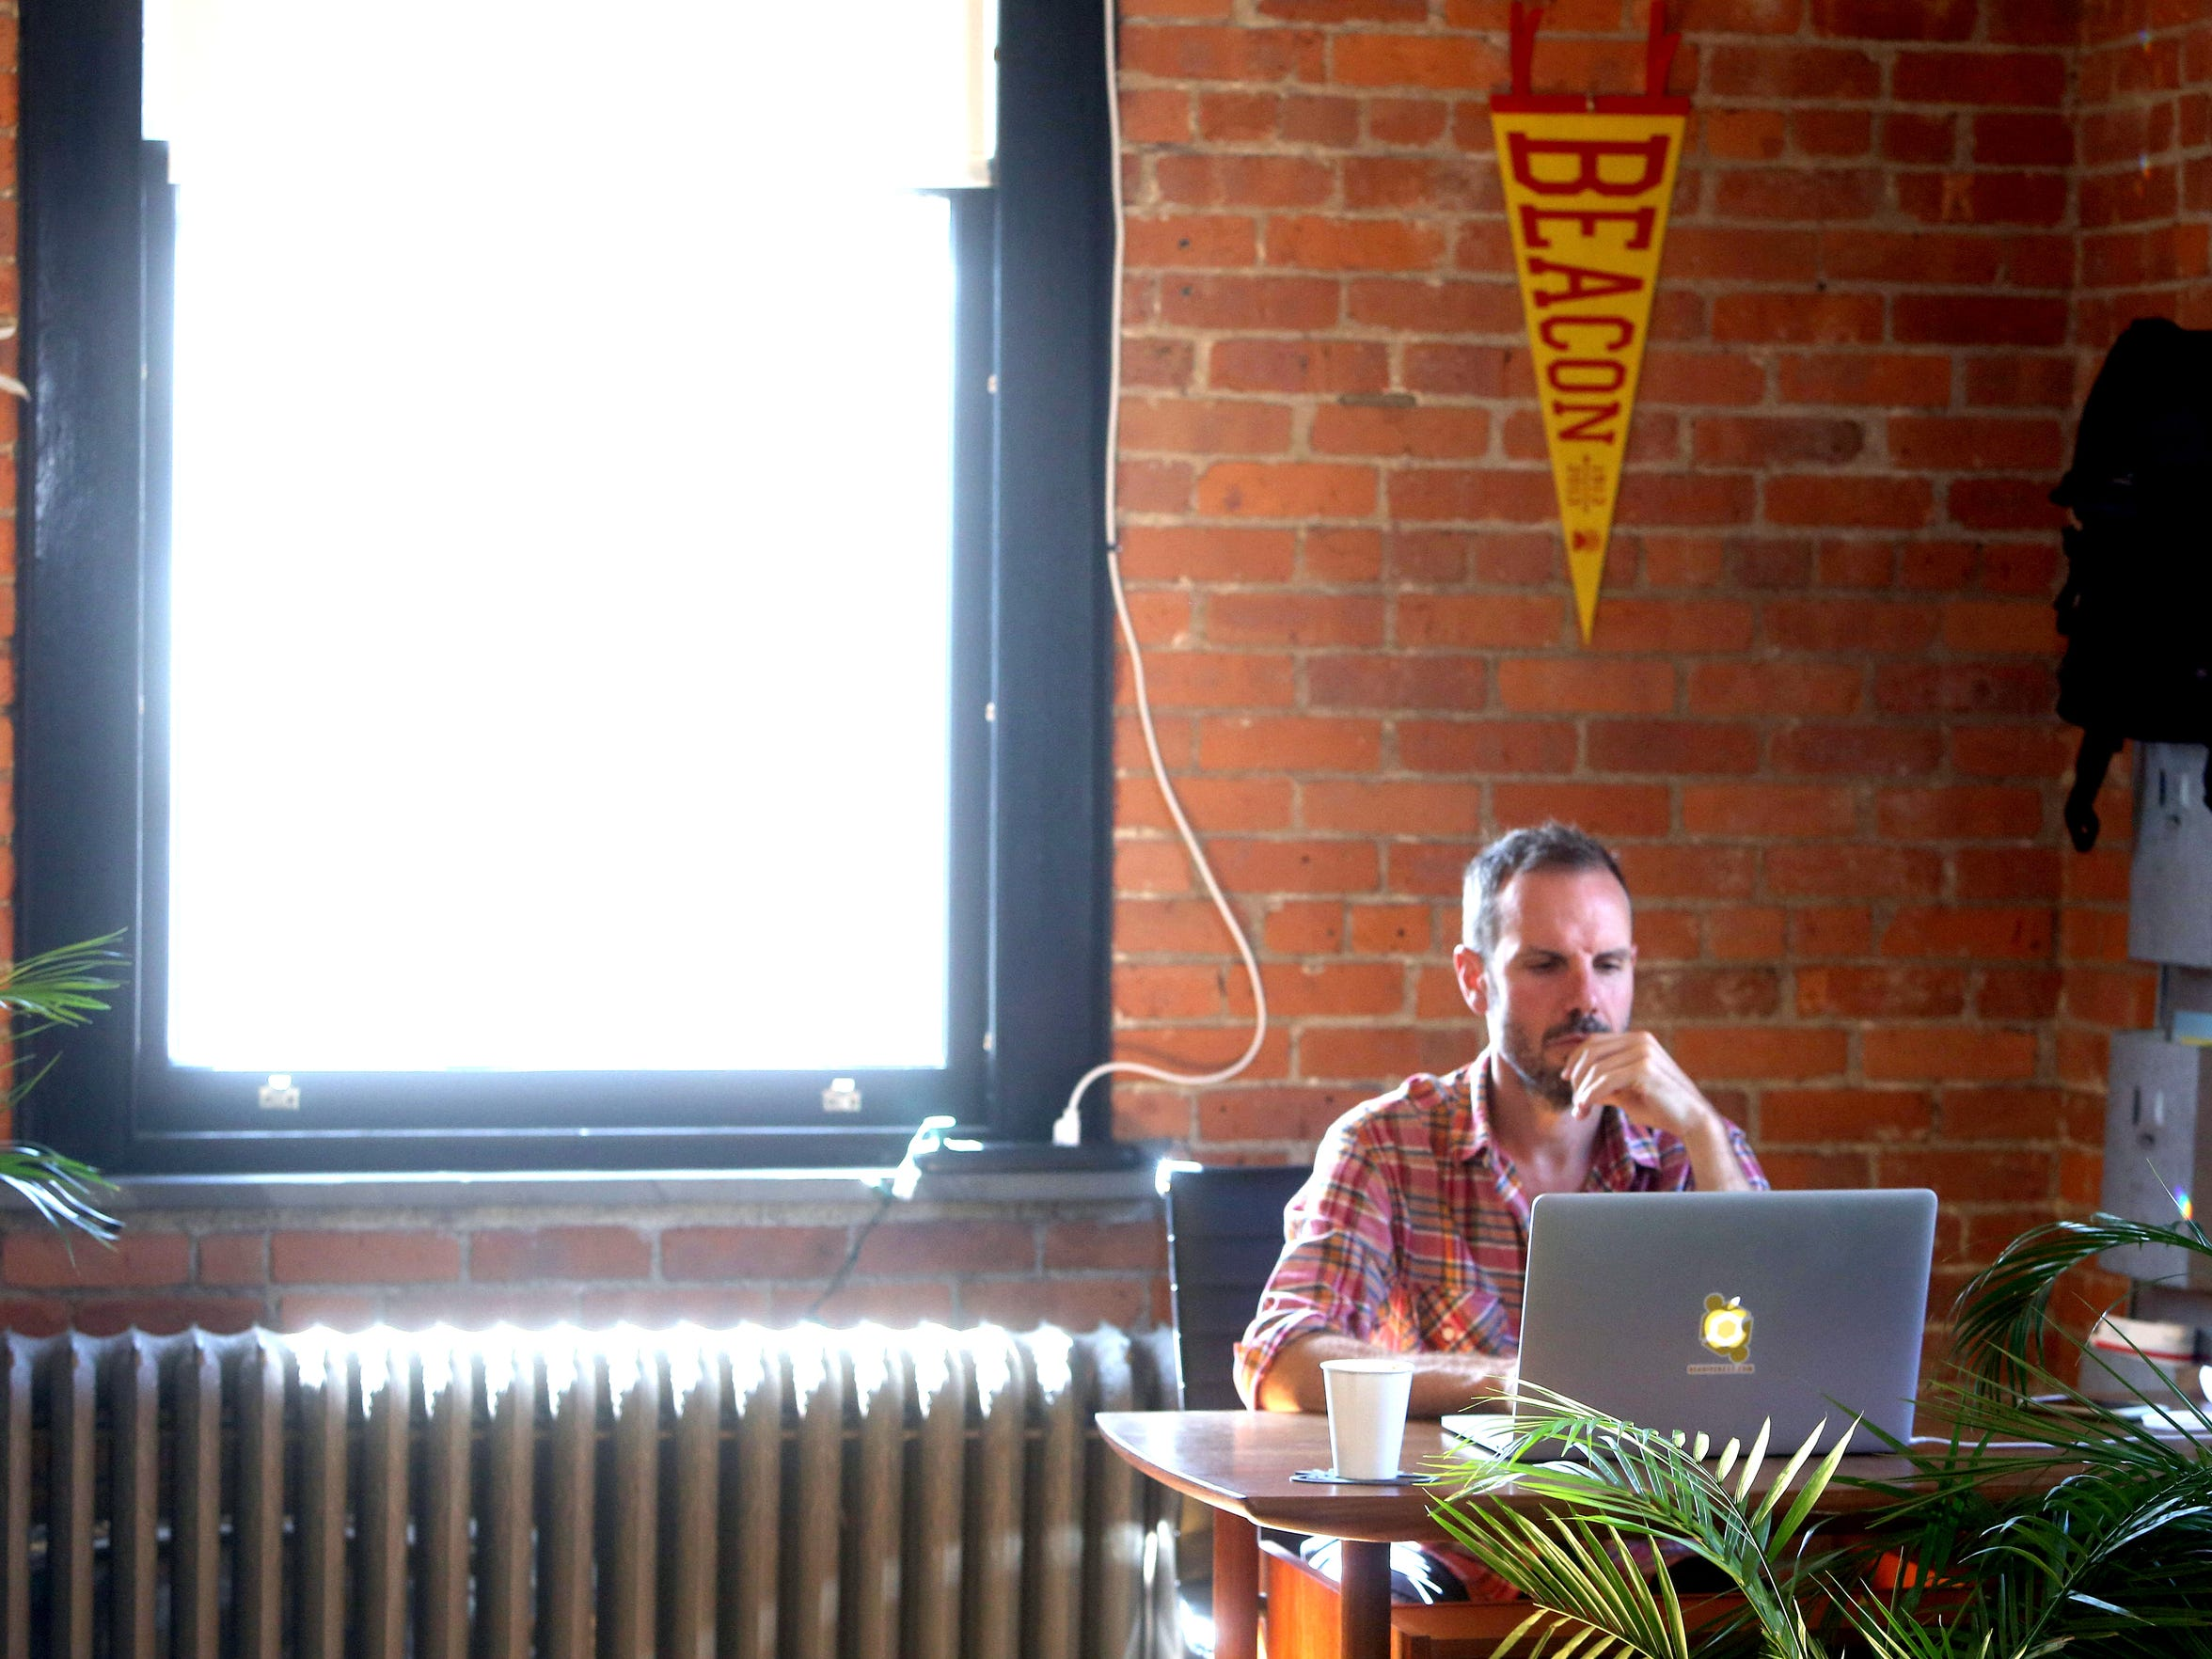 Scott Tillitt, founder of The Beahive, a shared workspace